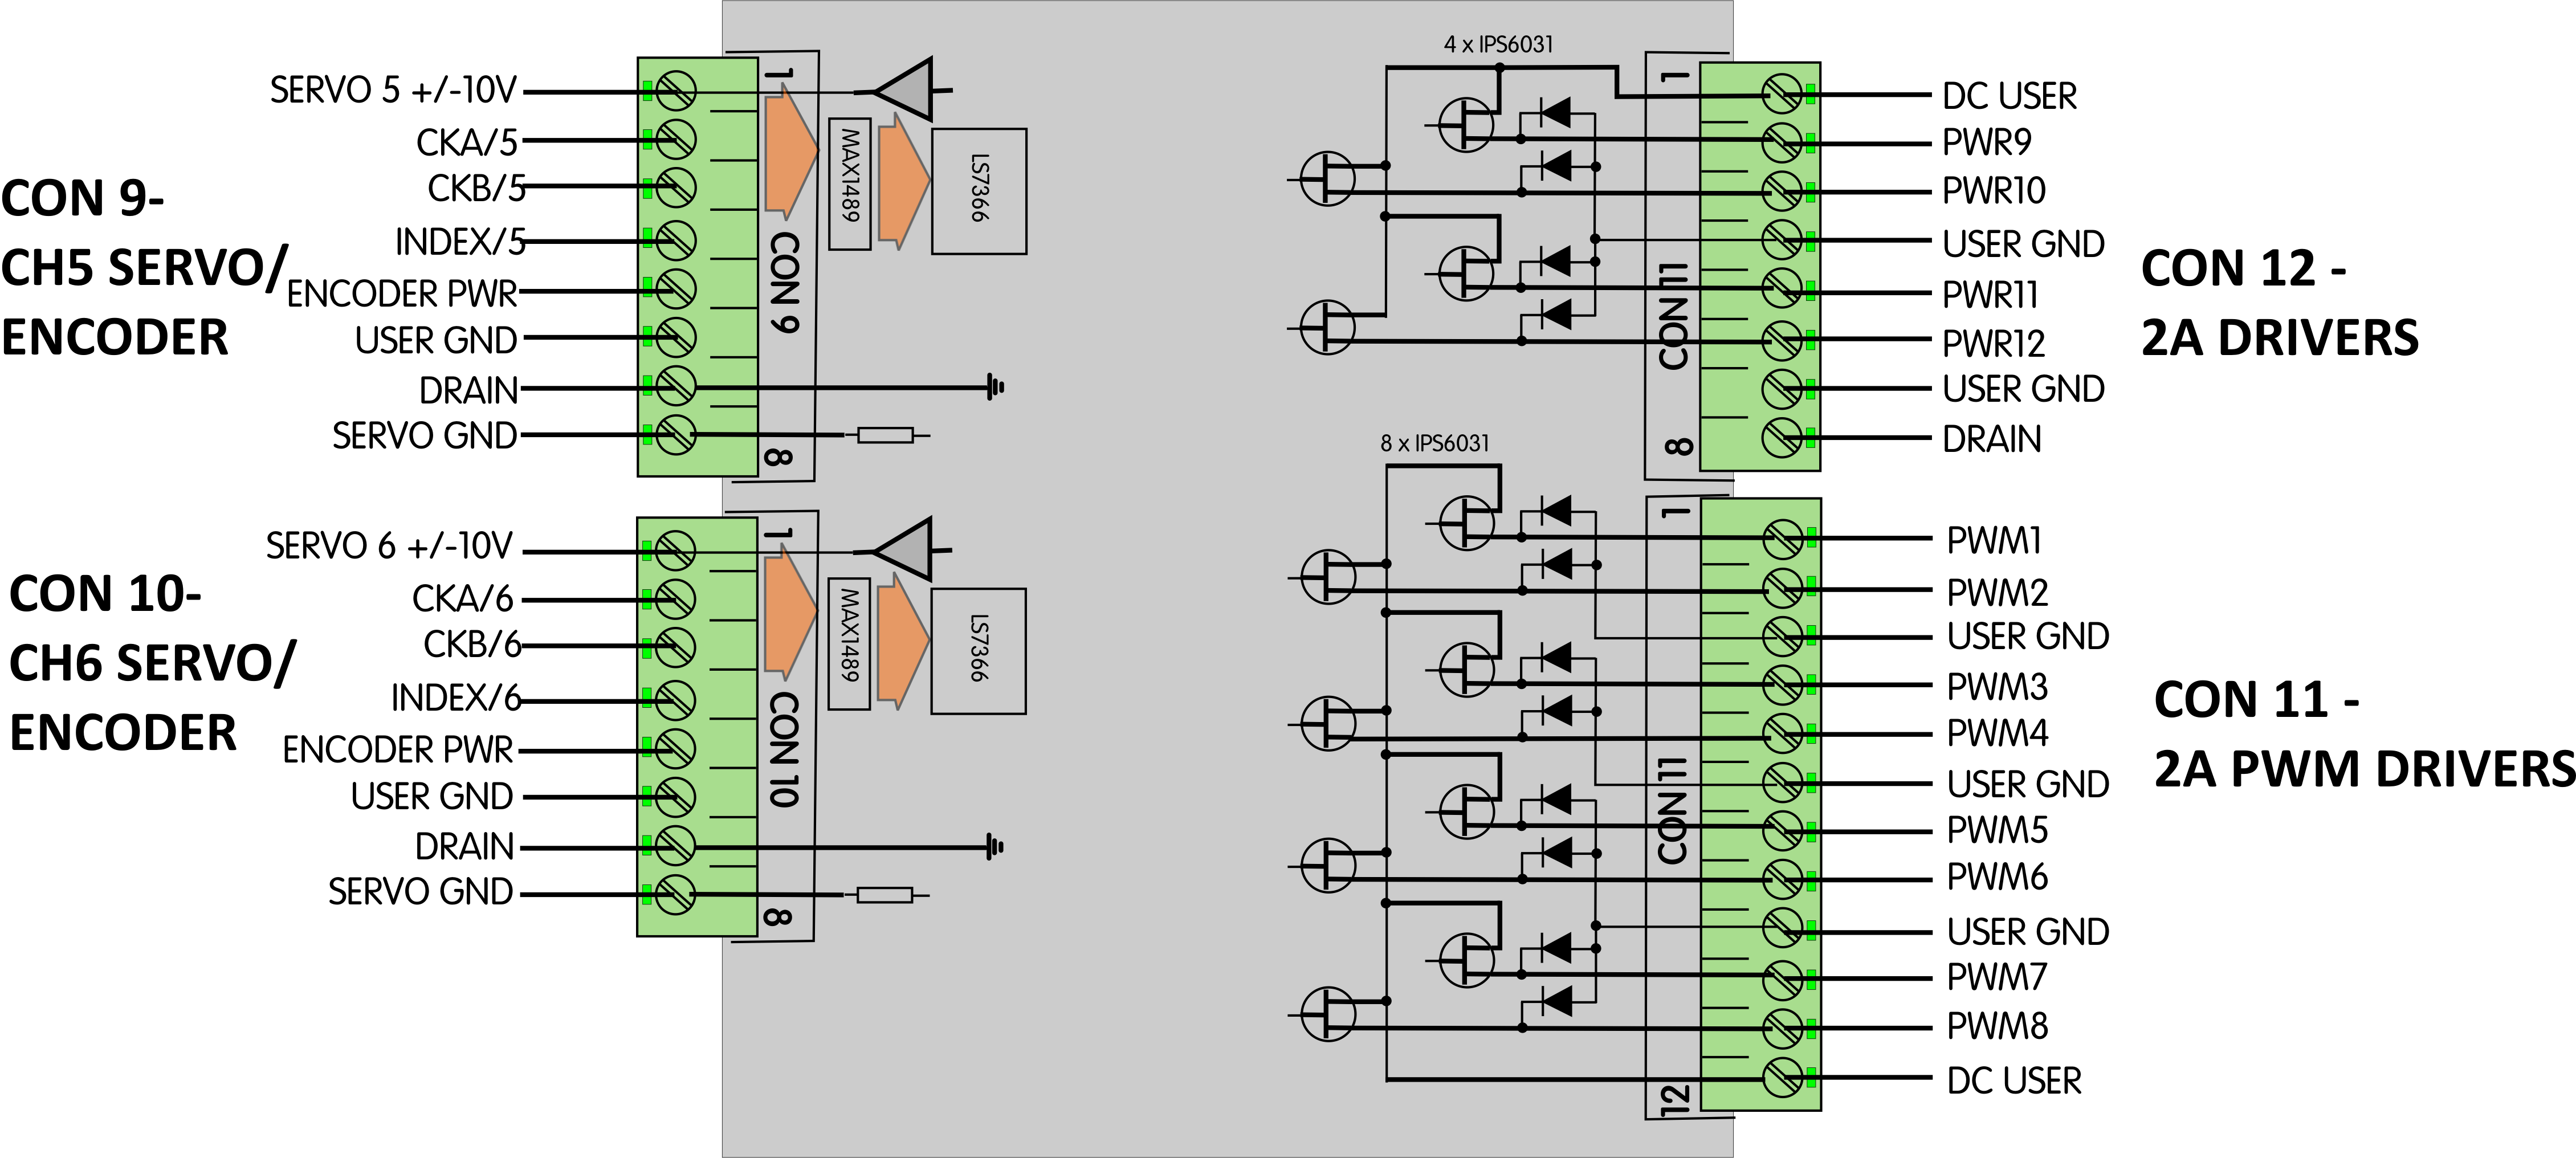 PWR-D, OPTION for AXES 5 + 6, + 8 PWM + 4 PWR DRIVERS